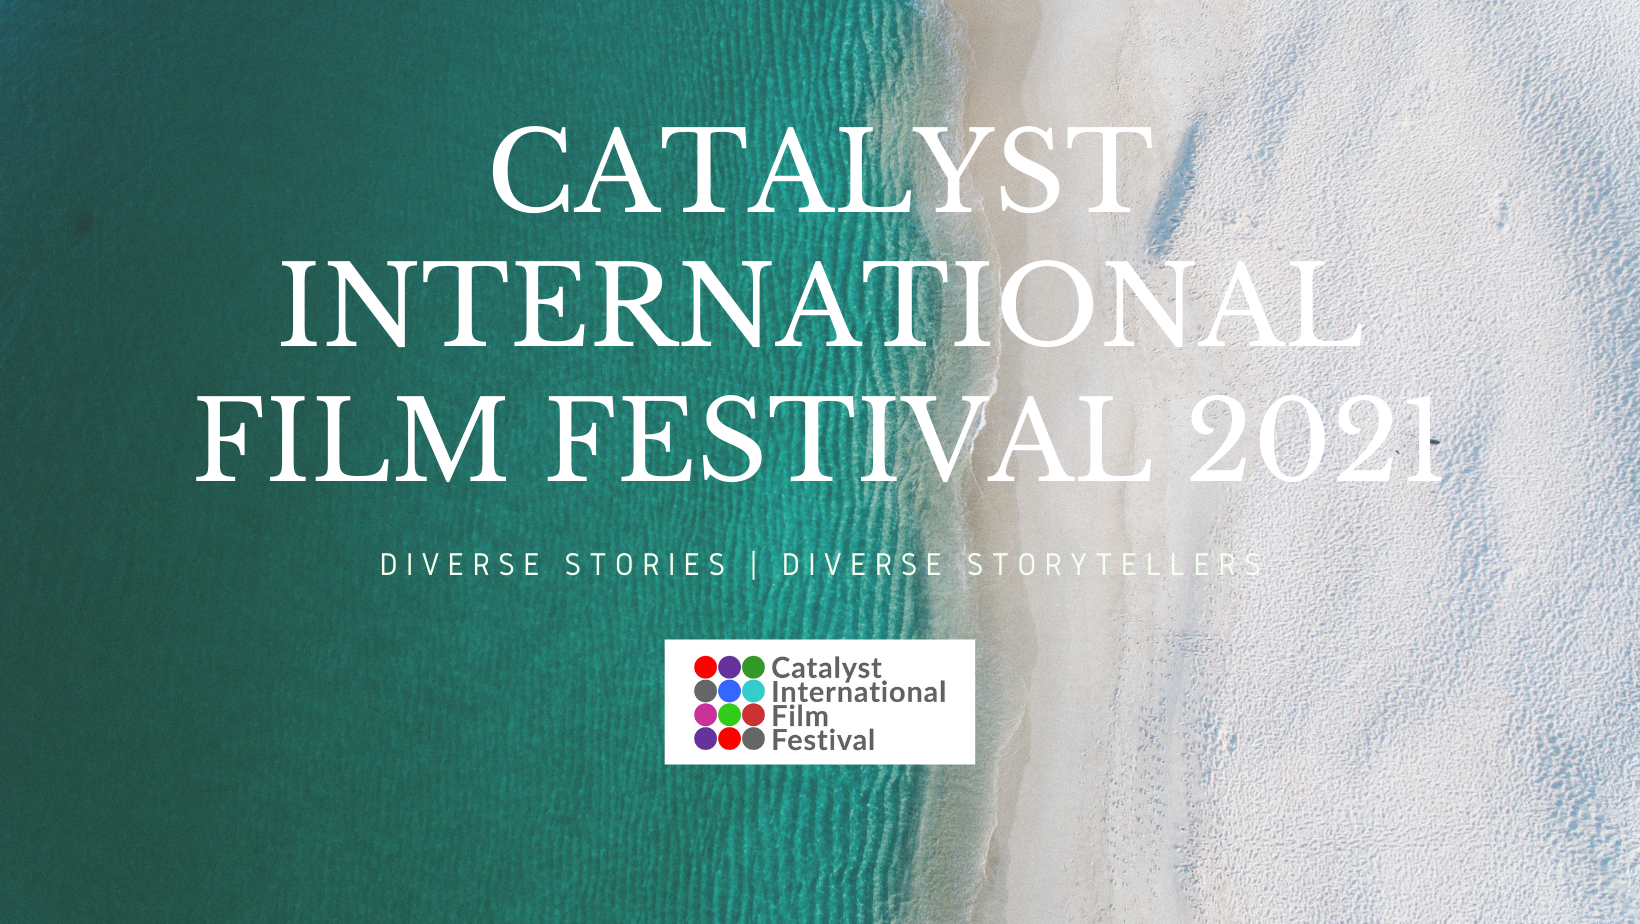 CATALYST INTERNATIONAL FILM FESTIVAL